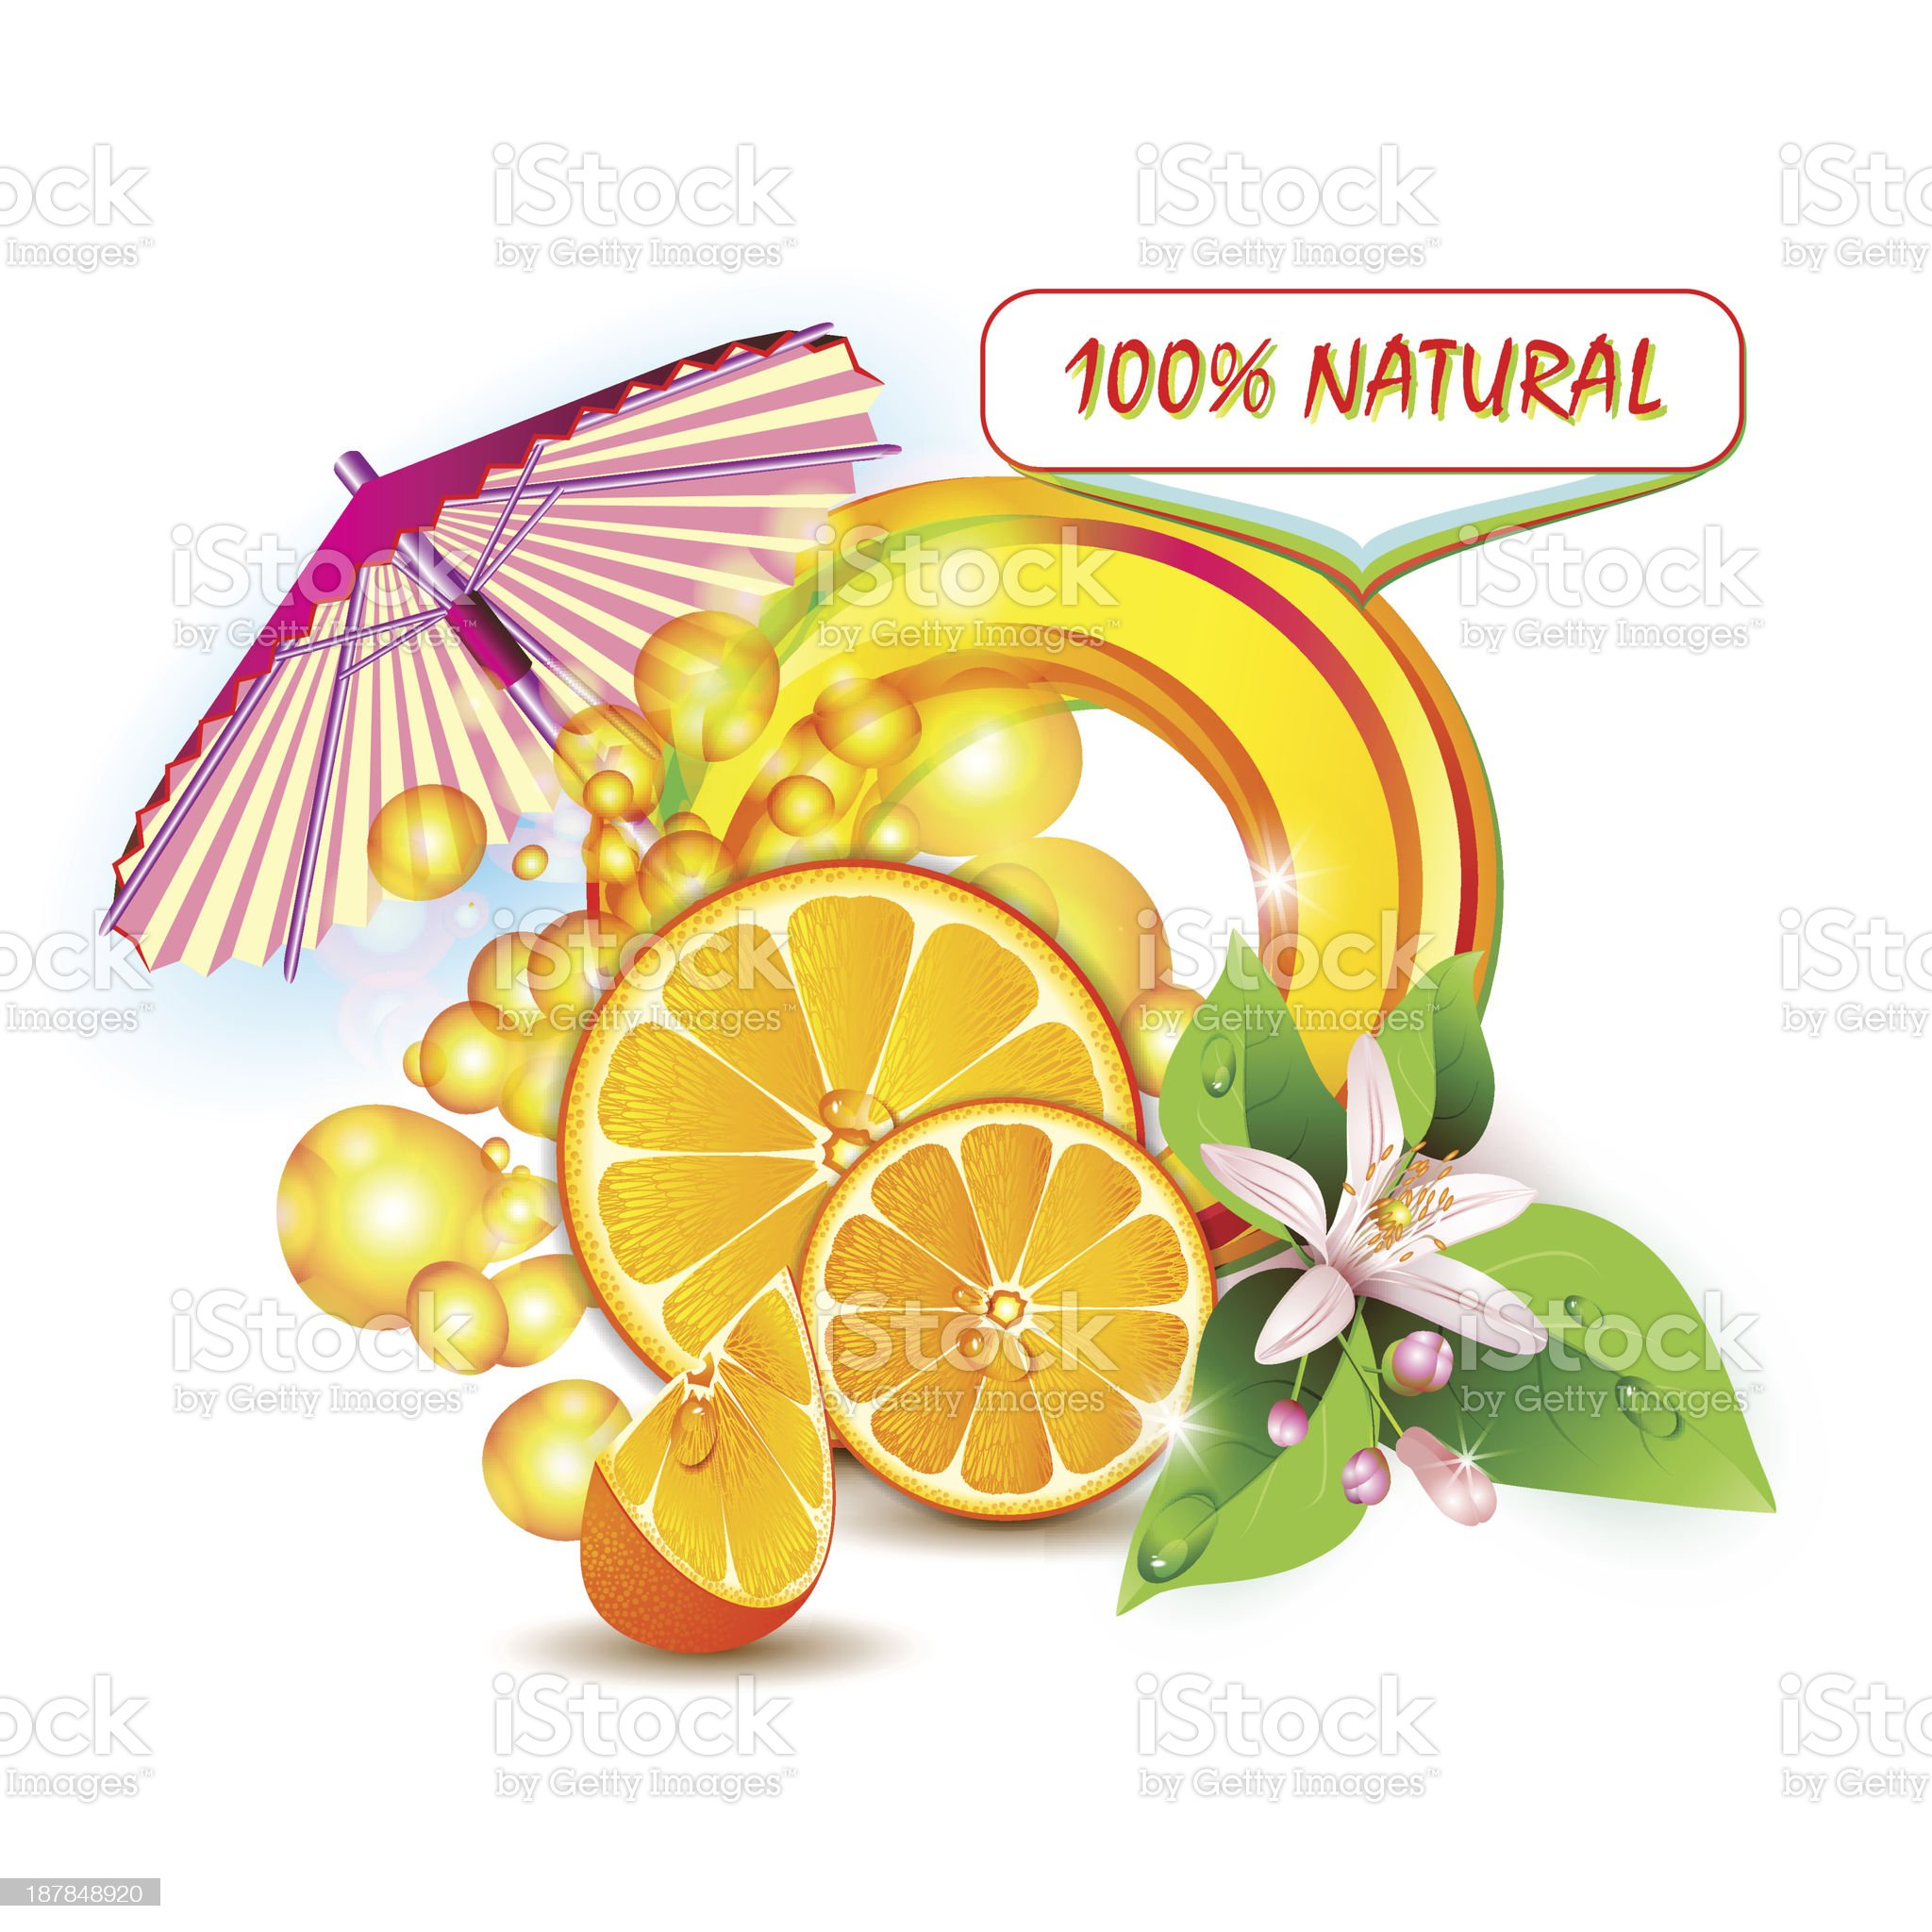 Slices orange with flowers and umbrella royalty-free stock vector art